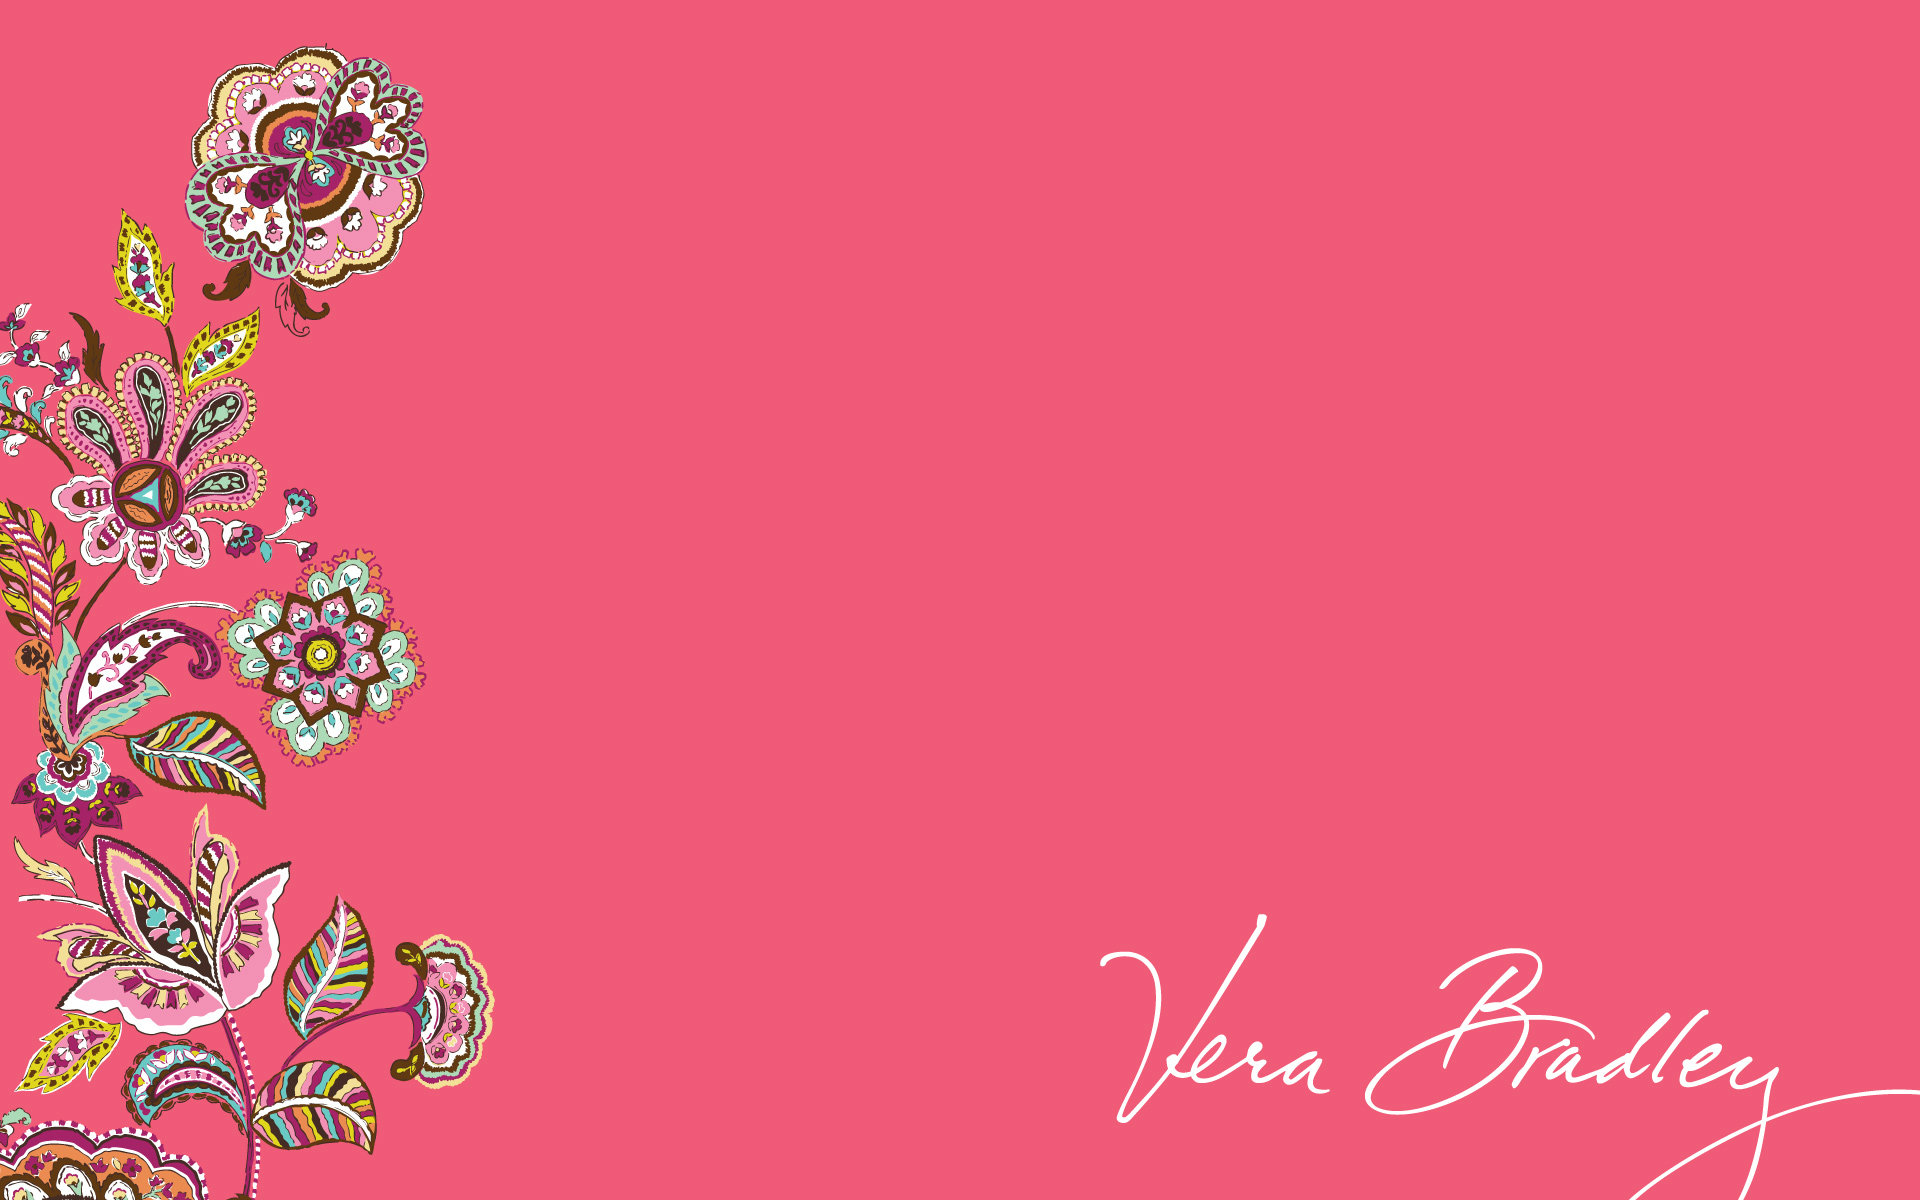 Vera Bradley Images Wallpaper Hd And Background Photos